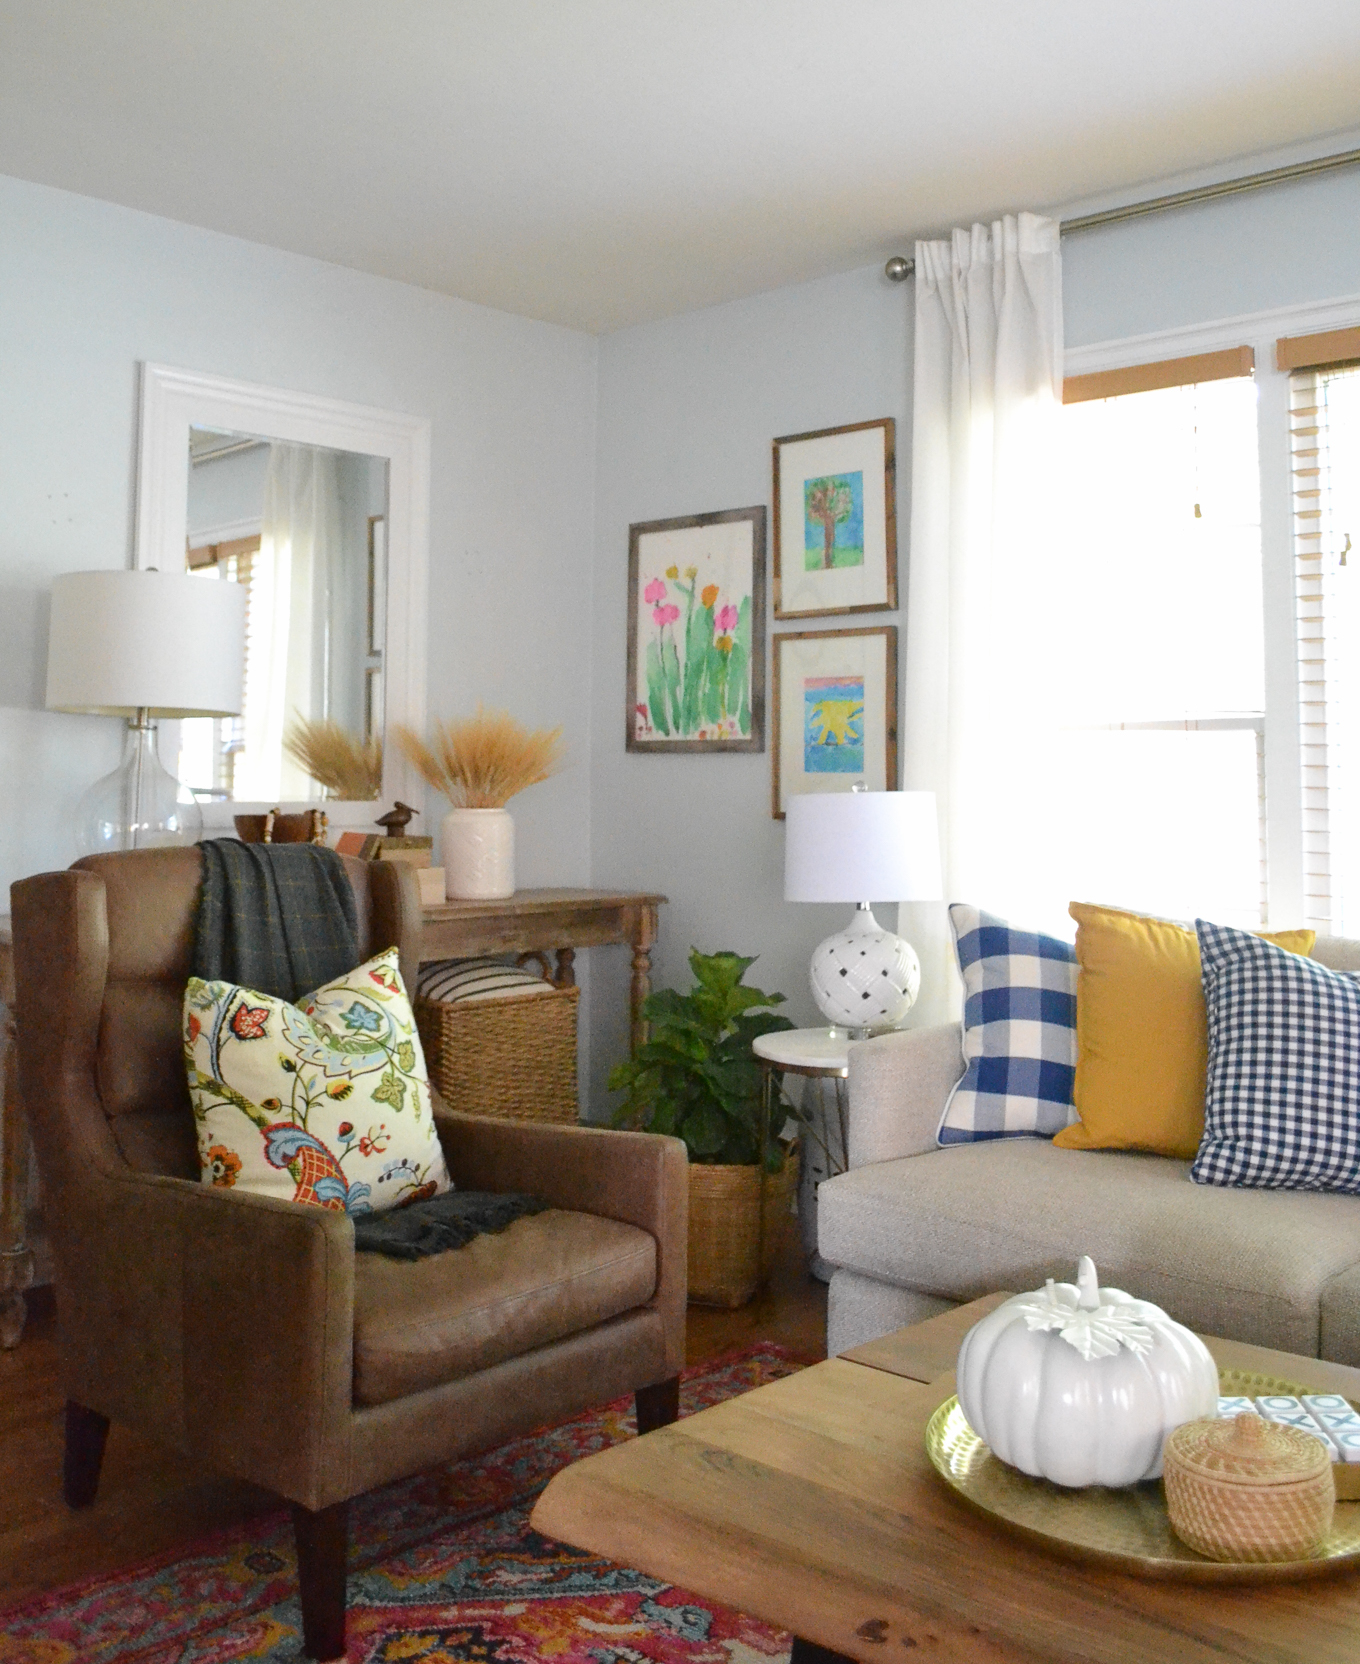 Home Design Ideas Youtube: Living Room Decorating Ideas For Fall